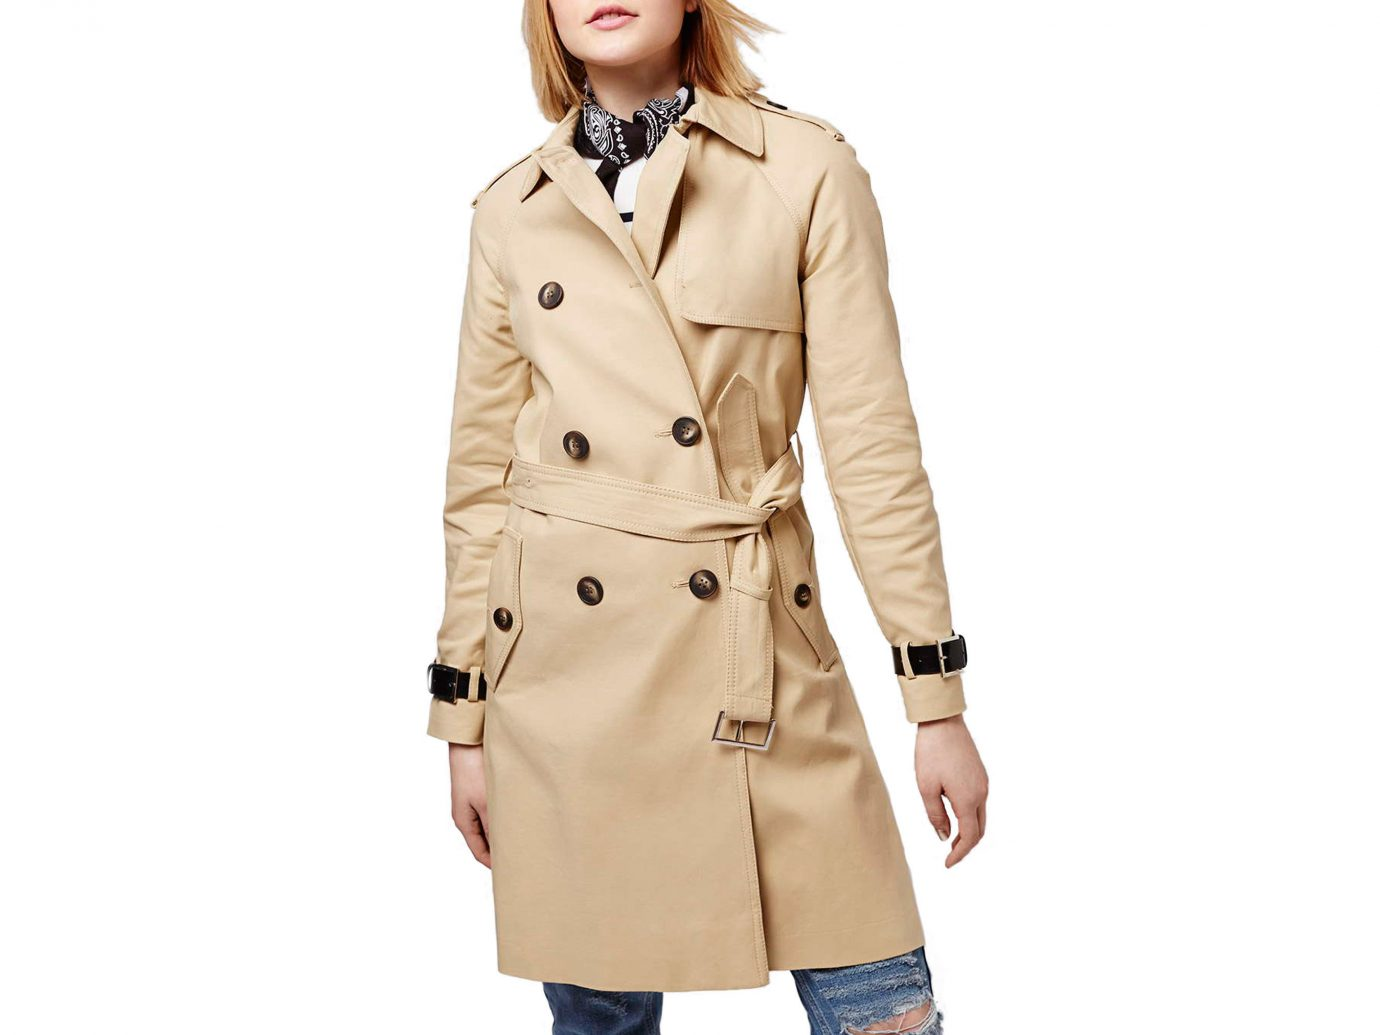 Style + Design clothing trench coat coat person wearing overcoat posing suit sleeve beige outerwear collar jacket dressed tan